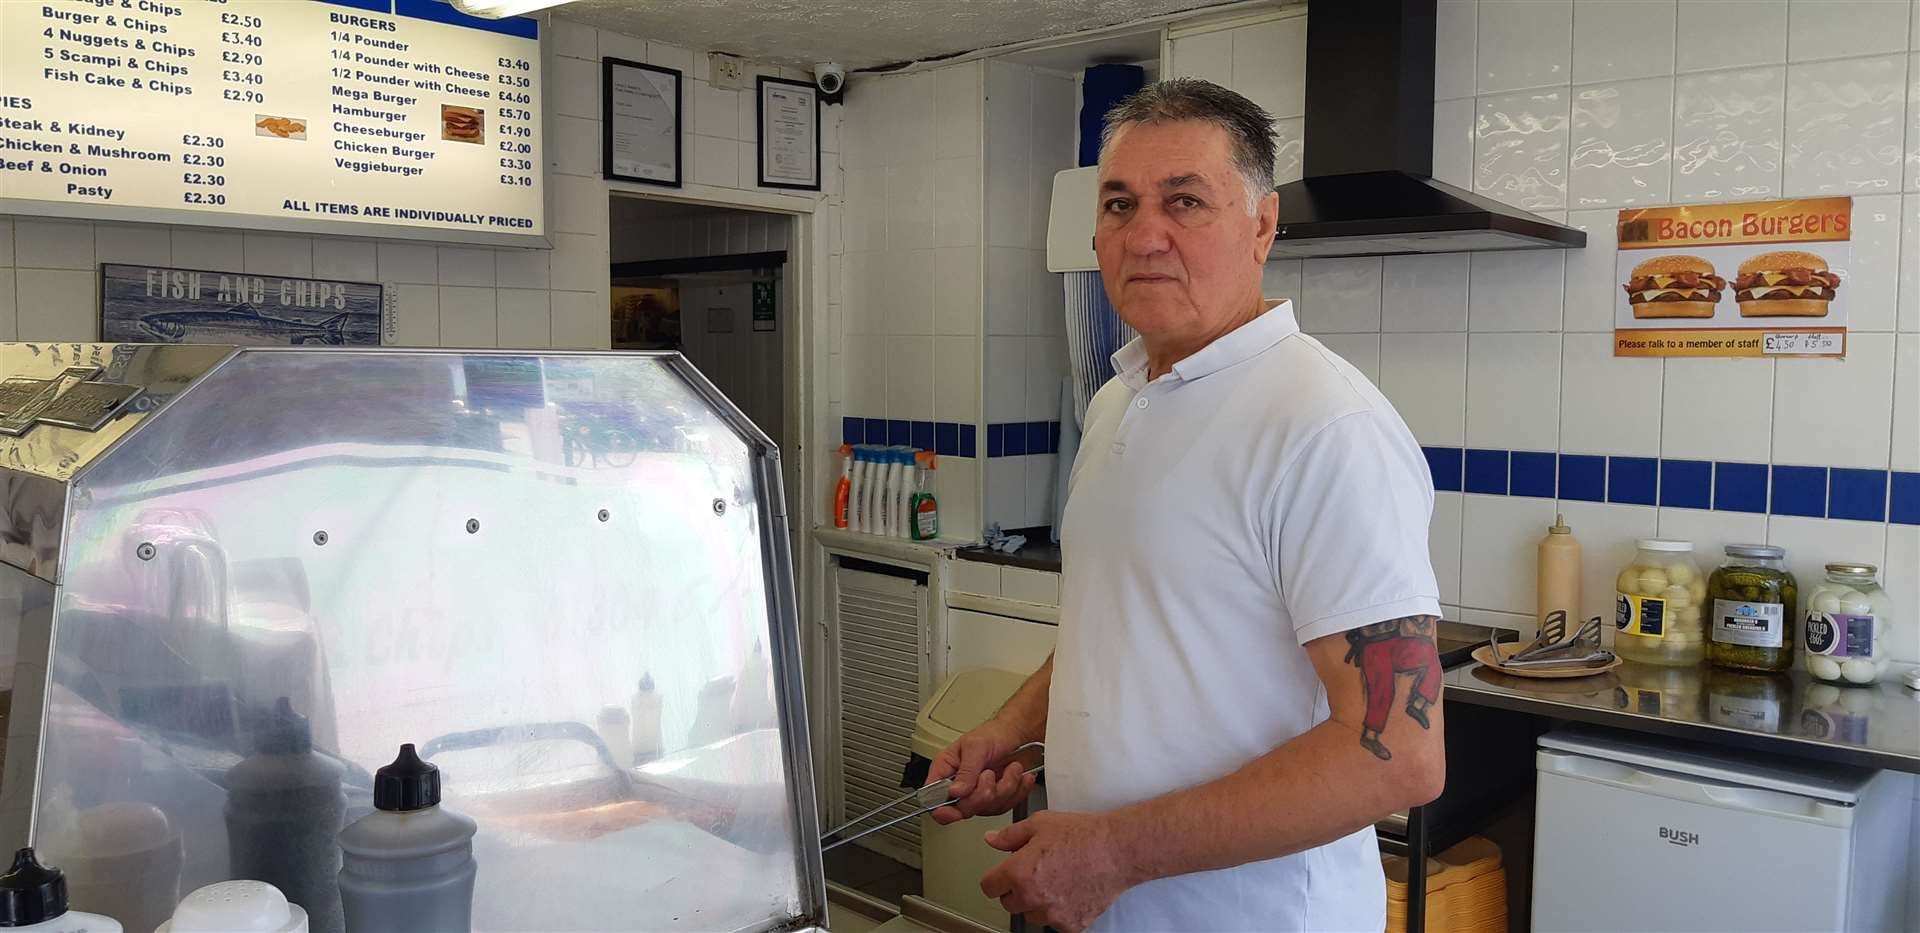 Ossie's Fish and Chip Shop were handing out free chips